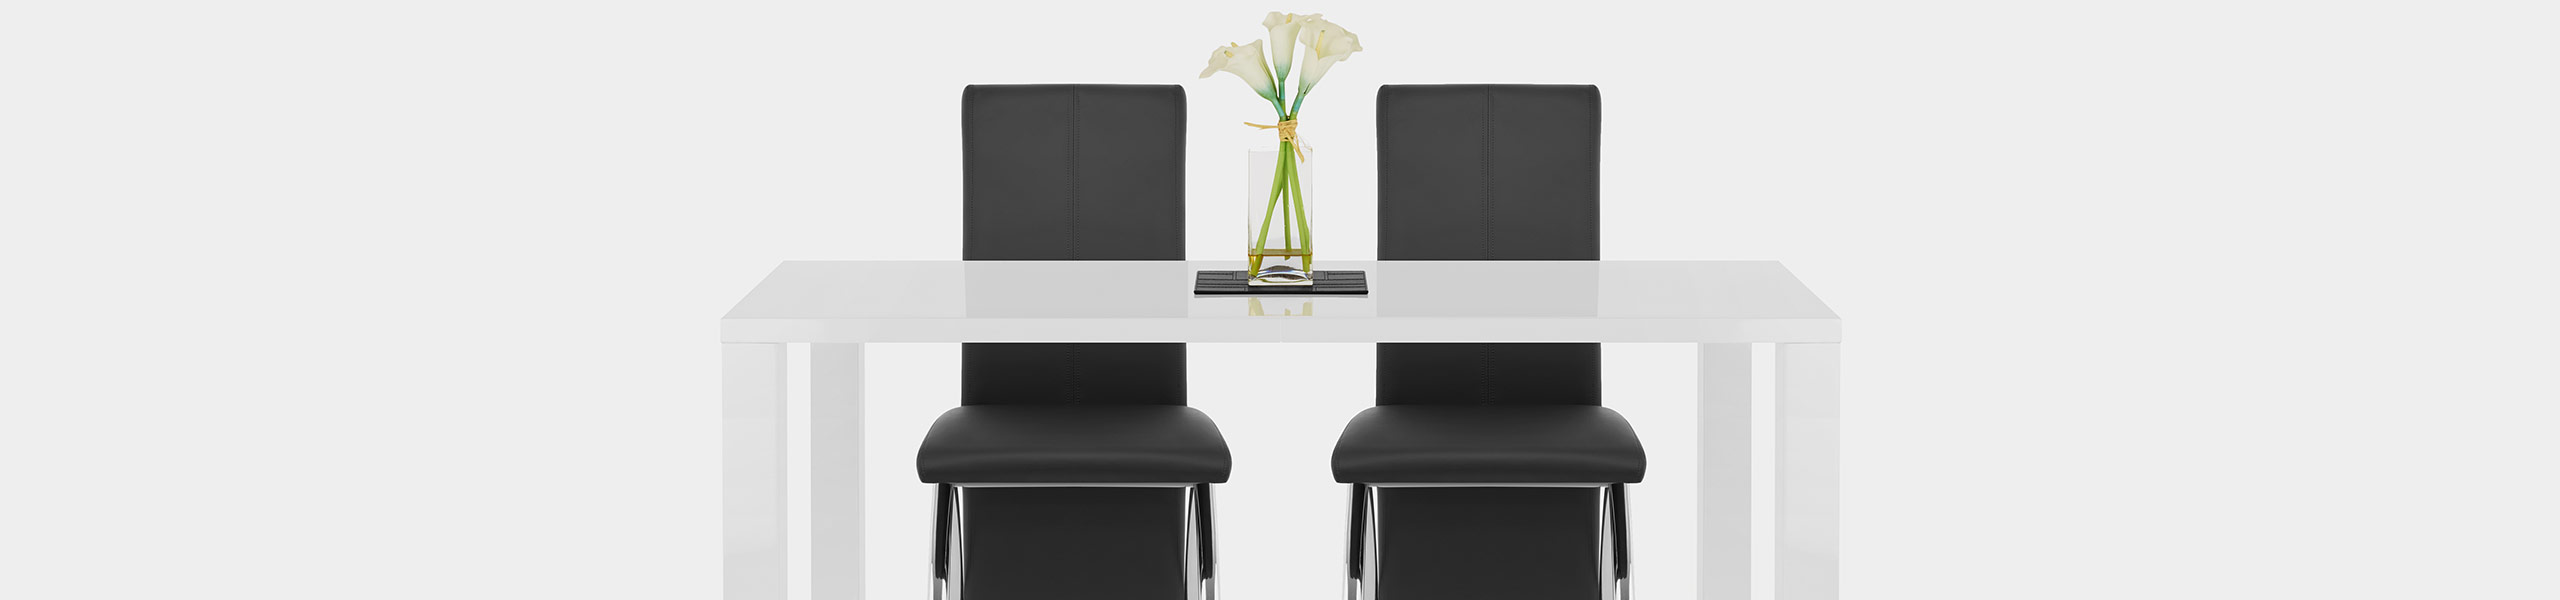 Dali Dining Chair Black Video Banner